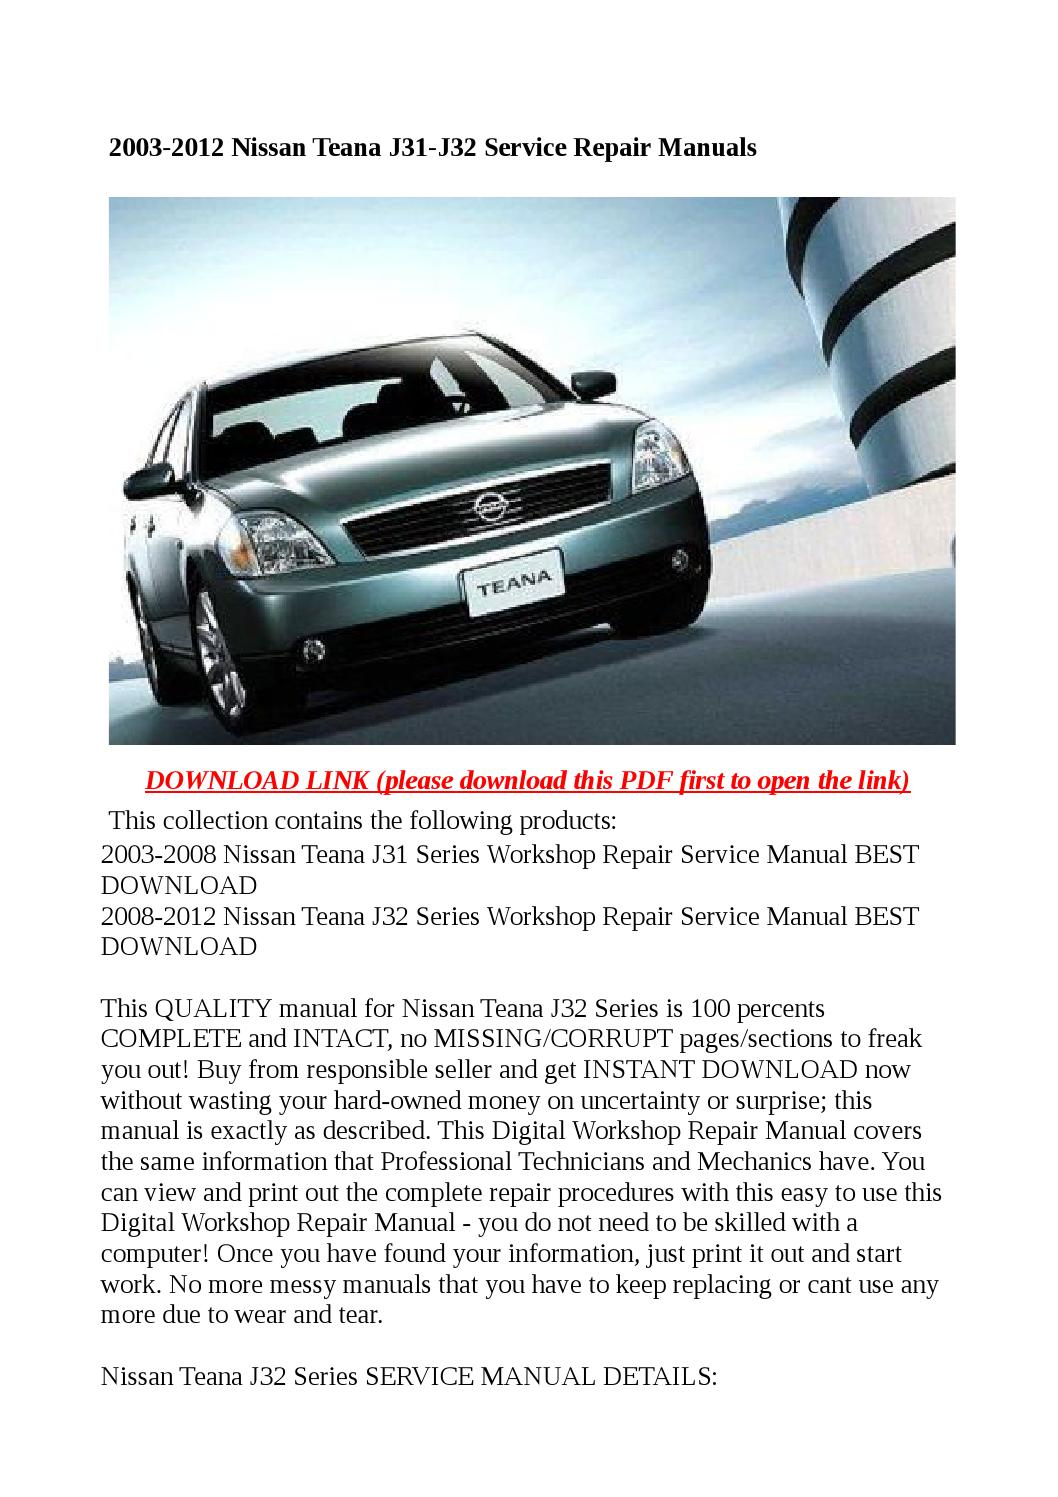 2003 2012 Nissan Teana J31 J32 Service Repair Manuals By Exo Issuu Almera N16 Airbag Wiring Diagram